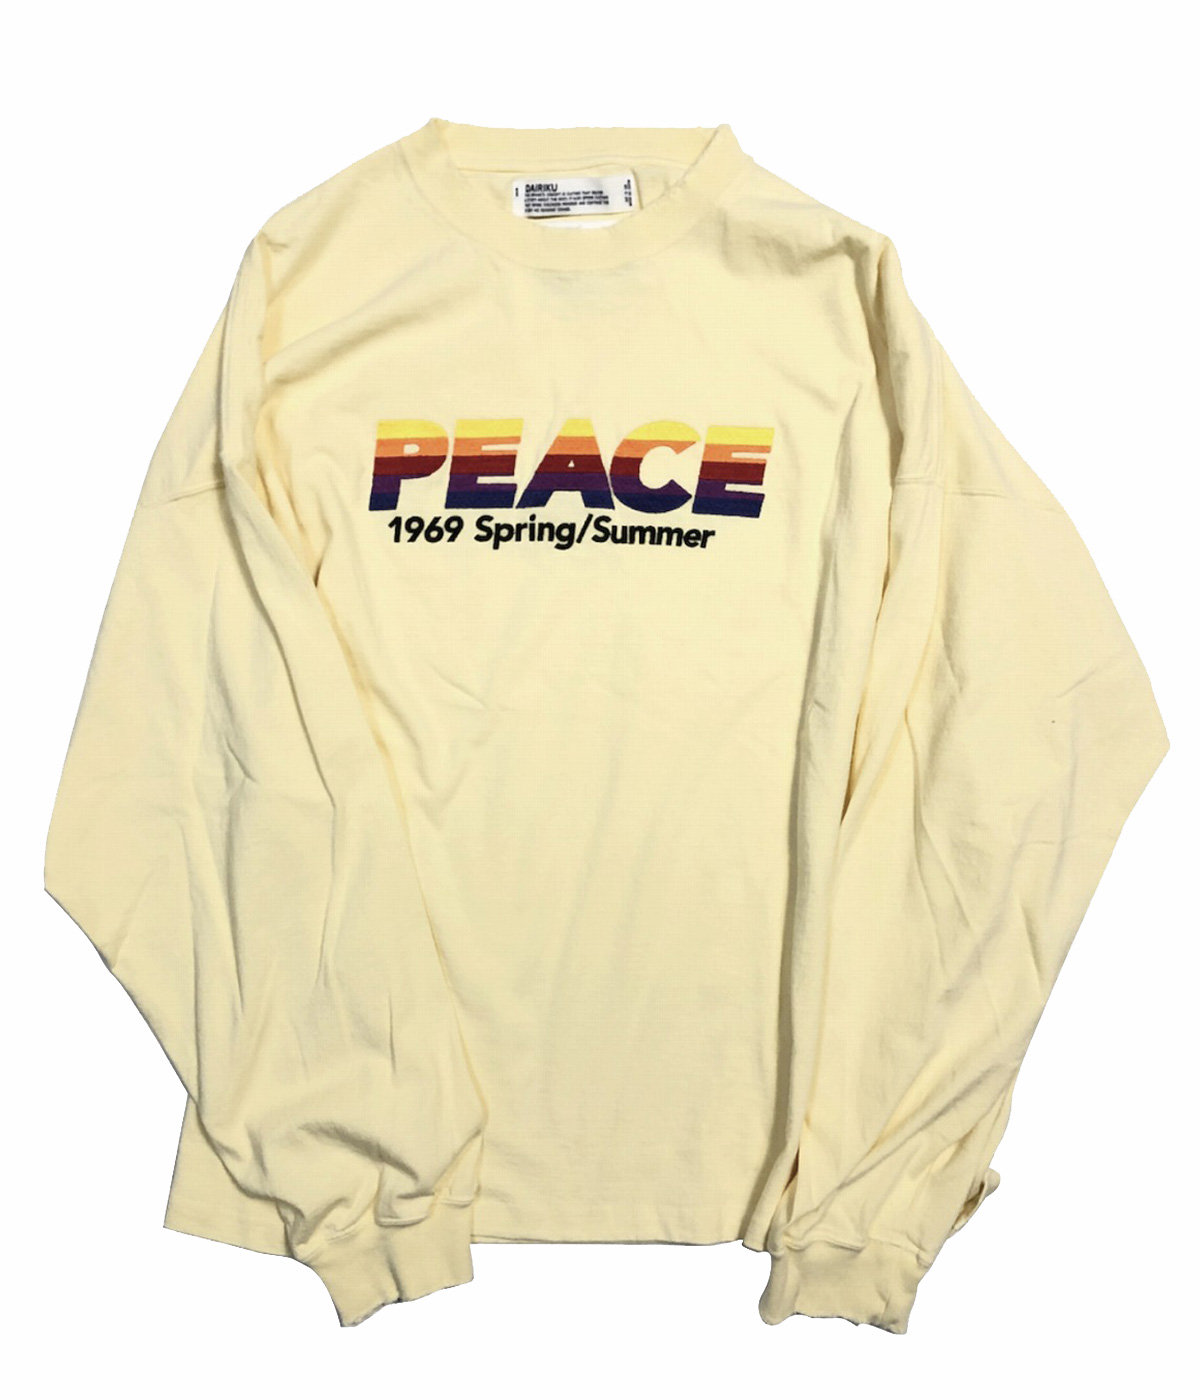 """PEACE"" Vintage Long Sleeve Tee"